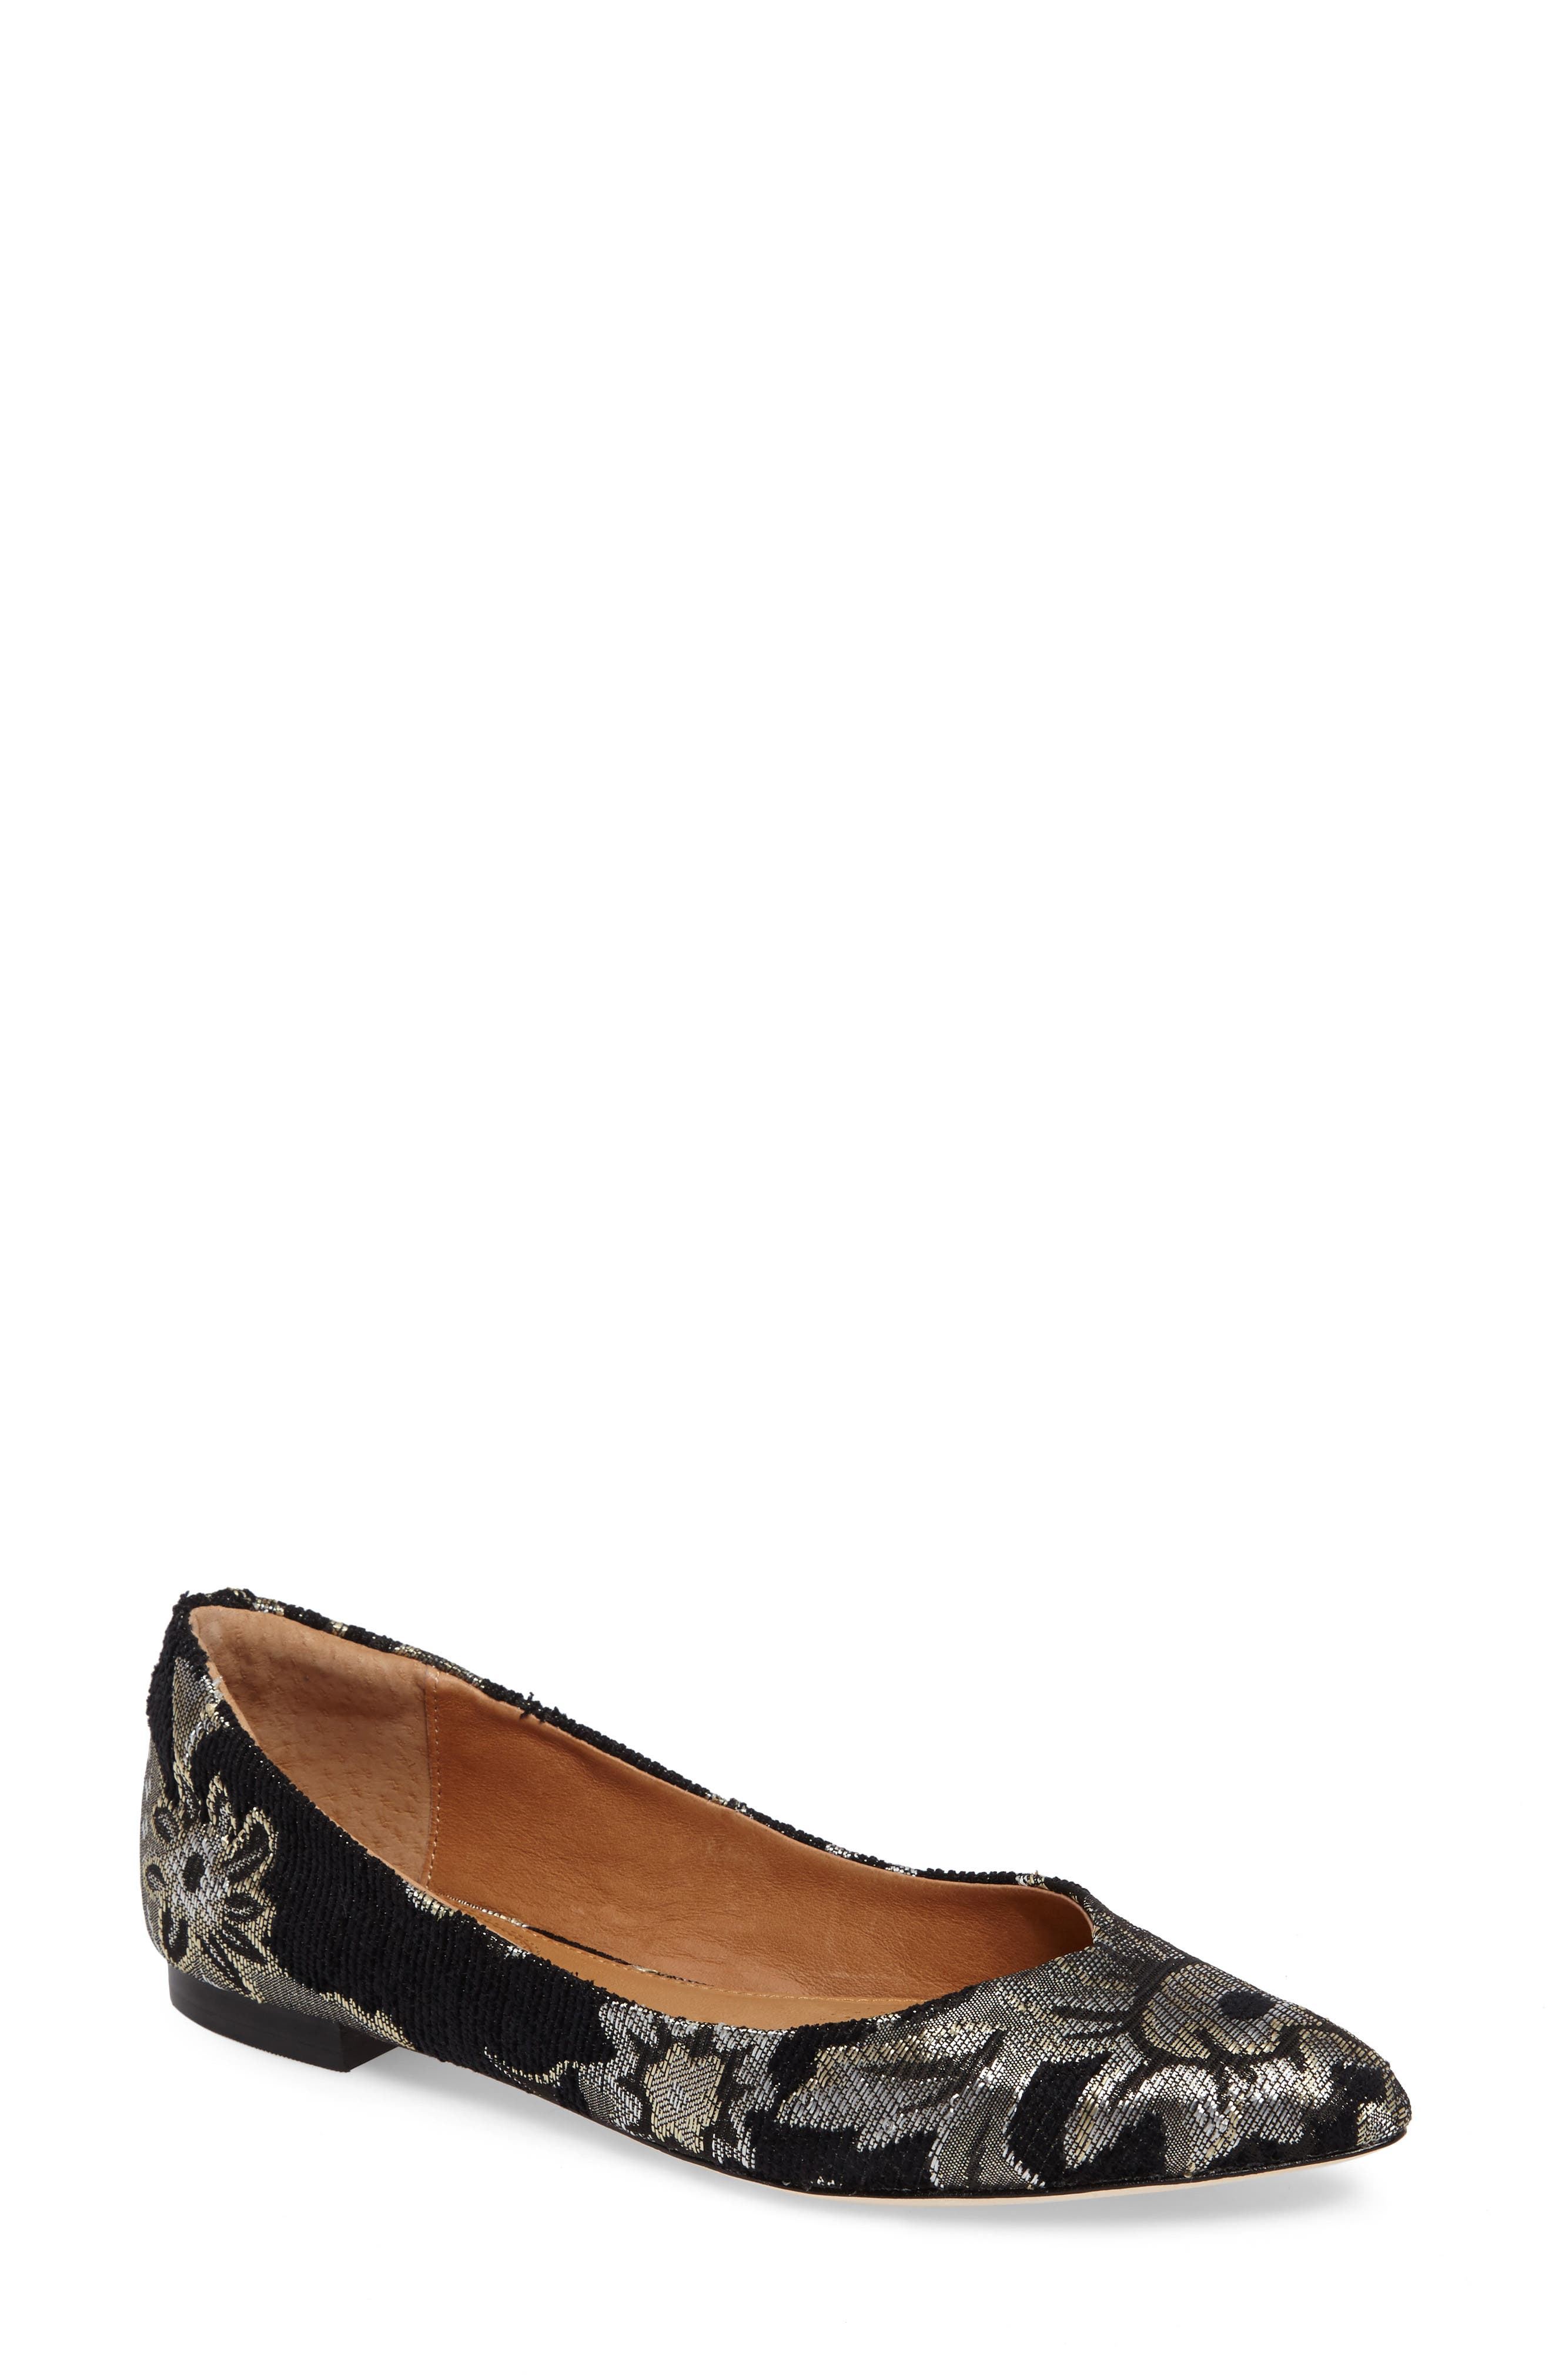 Julia Pointy Toe Flat,                         Main,                         color, Black Brocade Leather